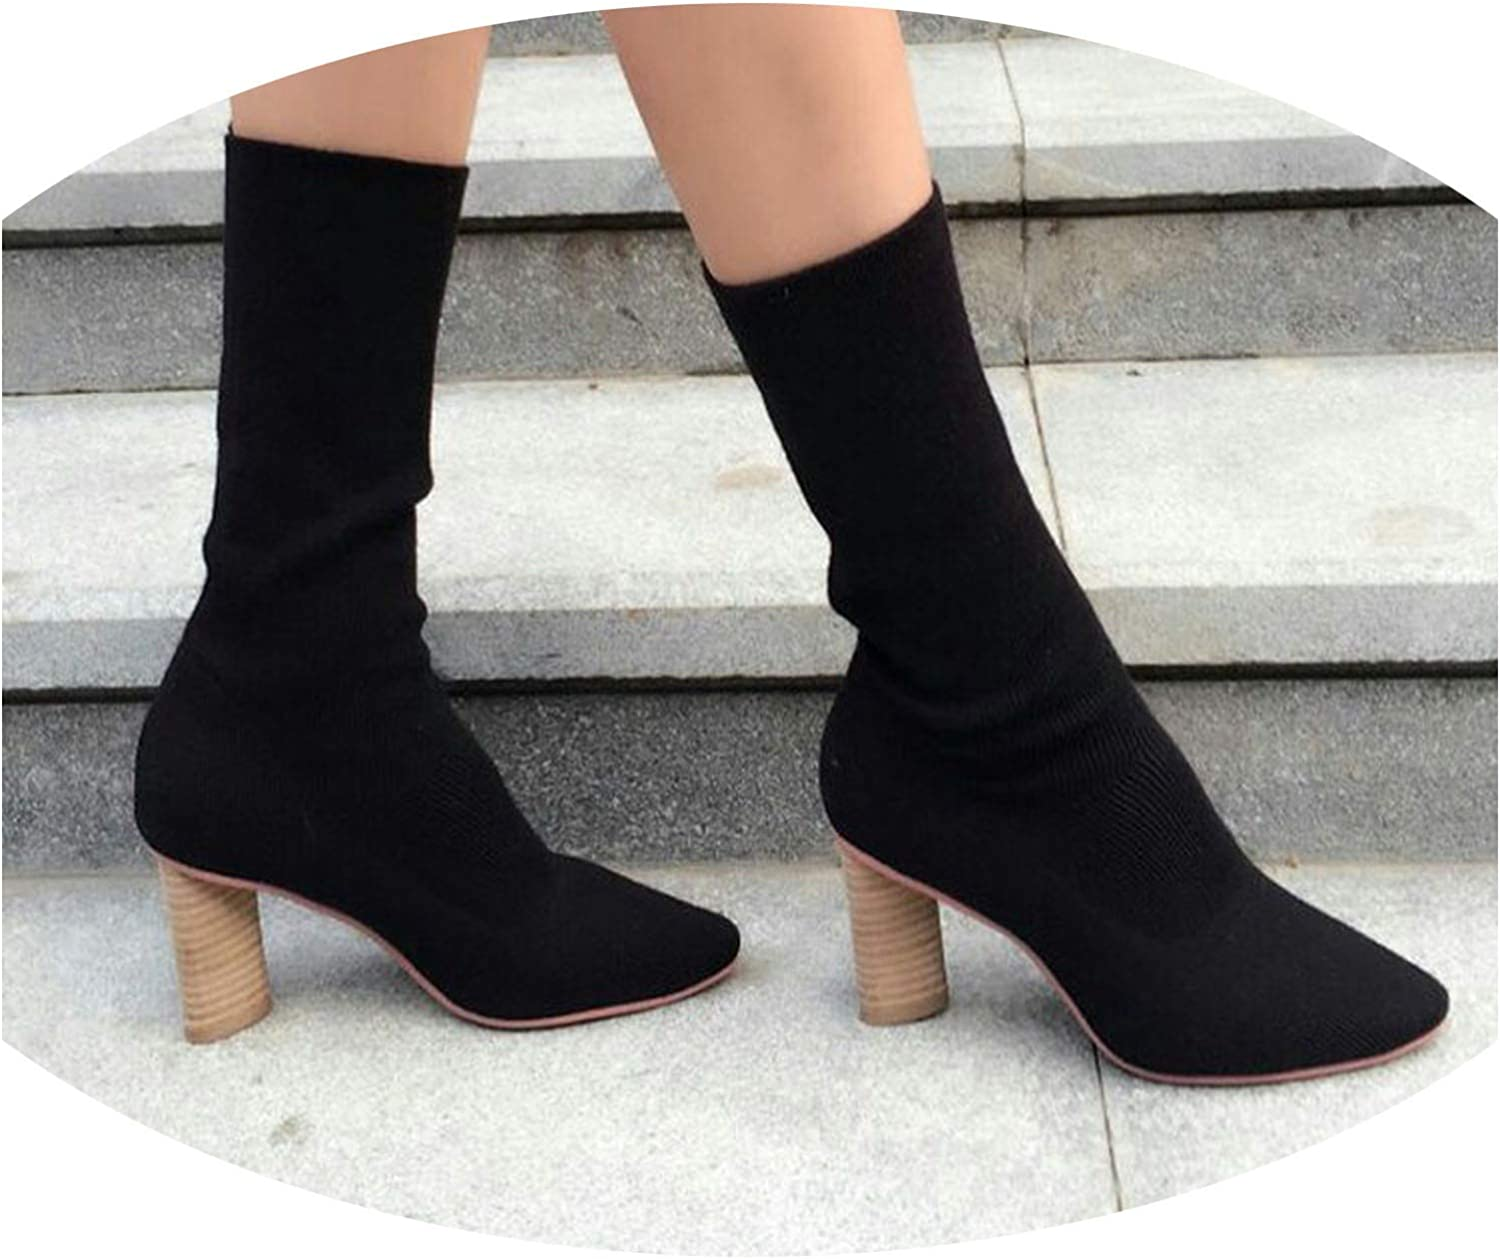 Elasticity Women Boots High-Heeled Boots Socks Boots Thick Heel Fashion Ladies Boots Apricot